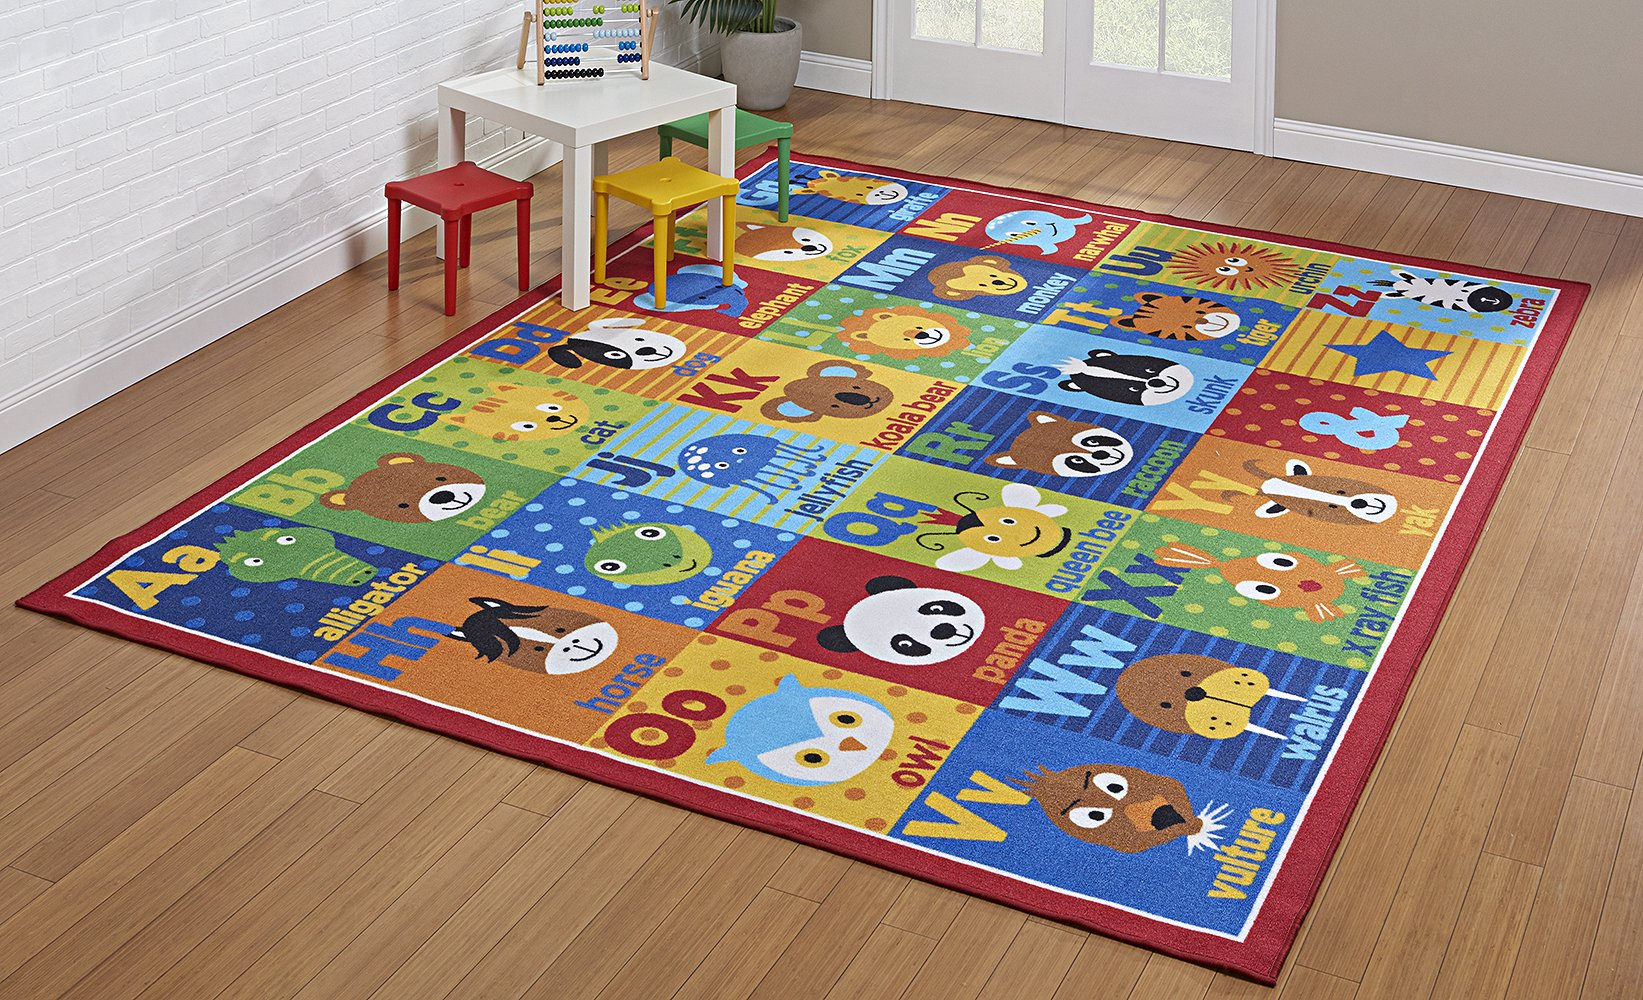 Smithsonian Rug Abc Alphabet Learning Carpets Bedding Play